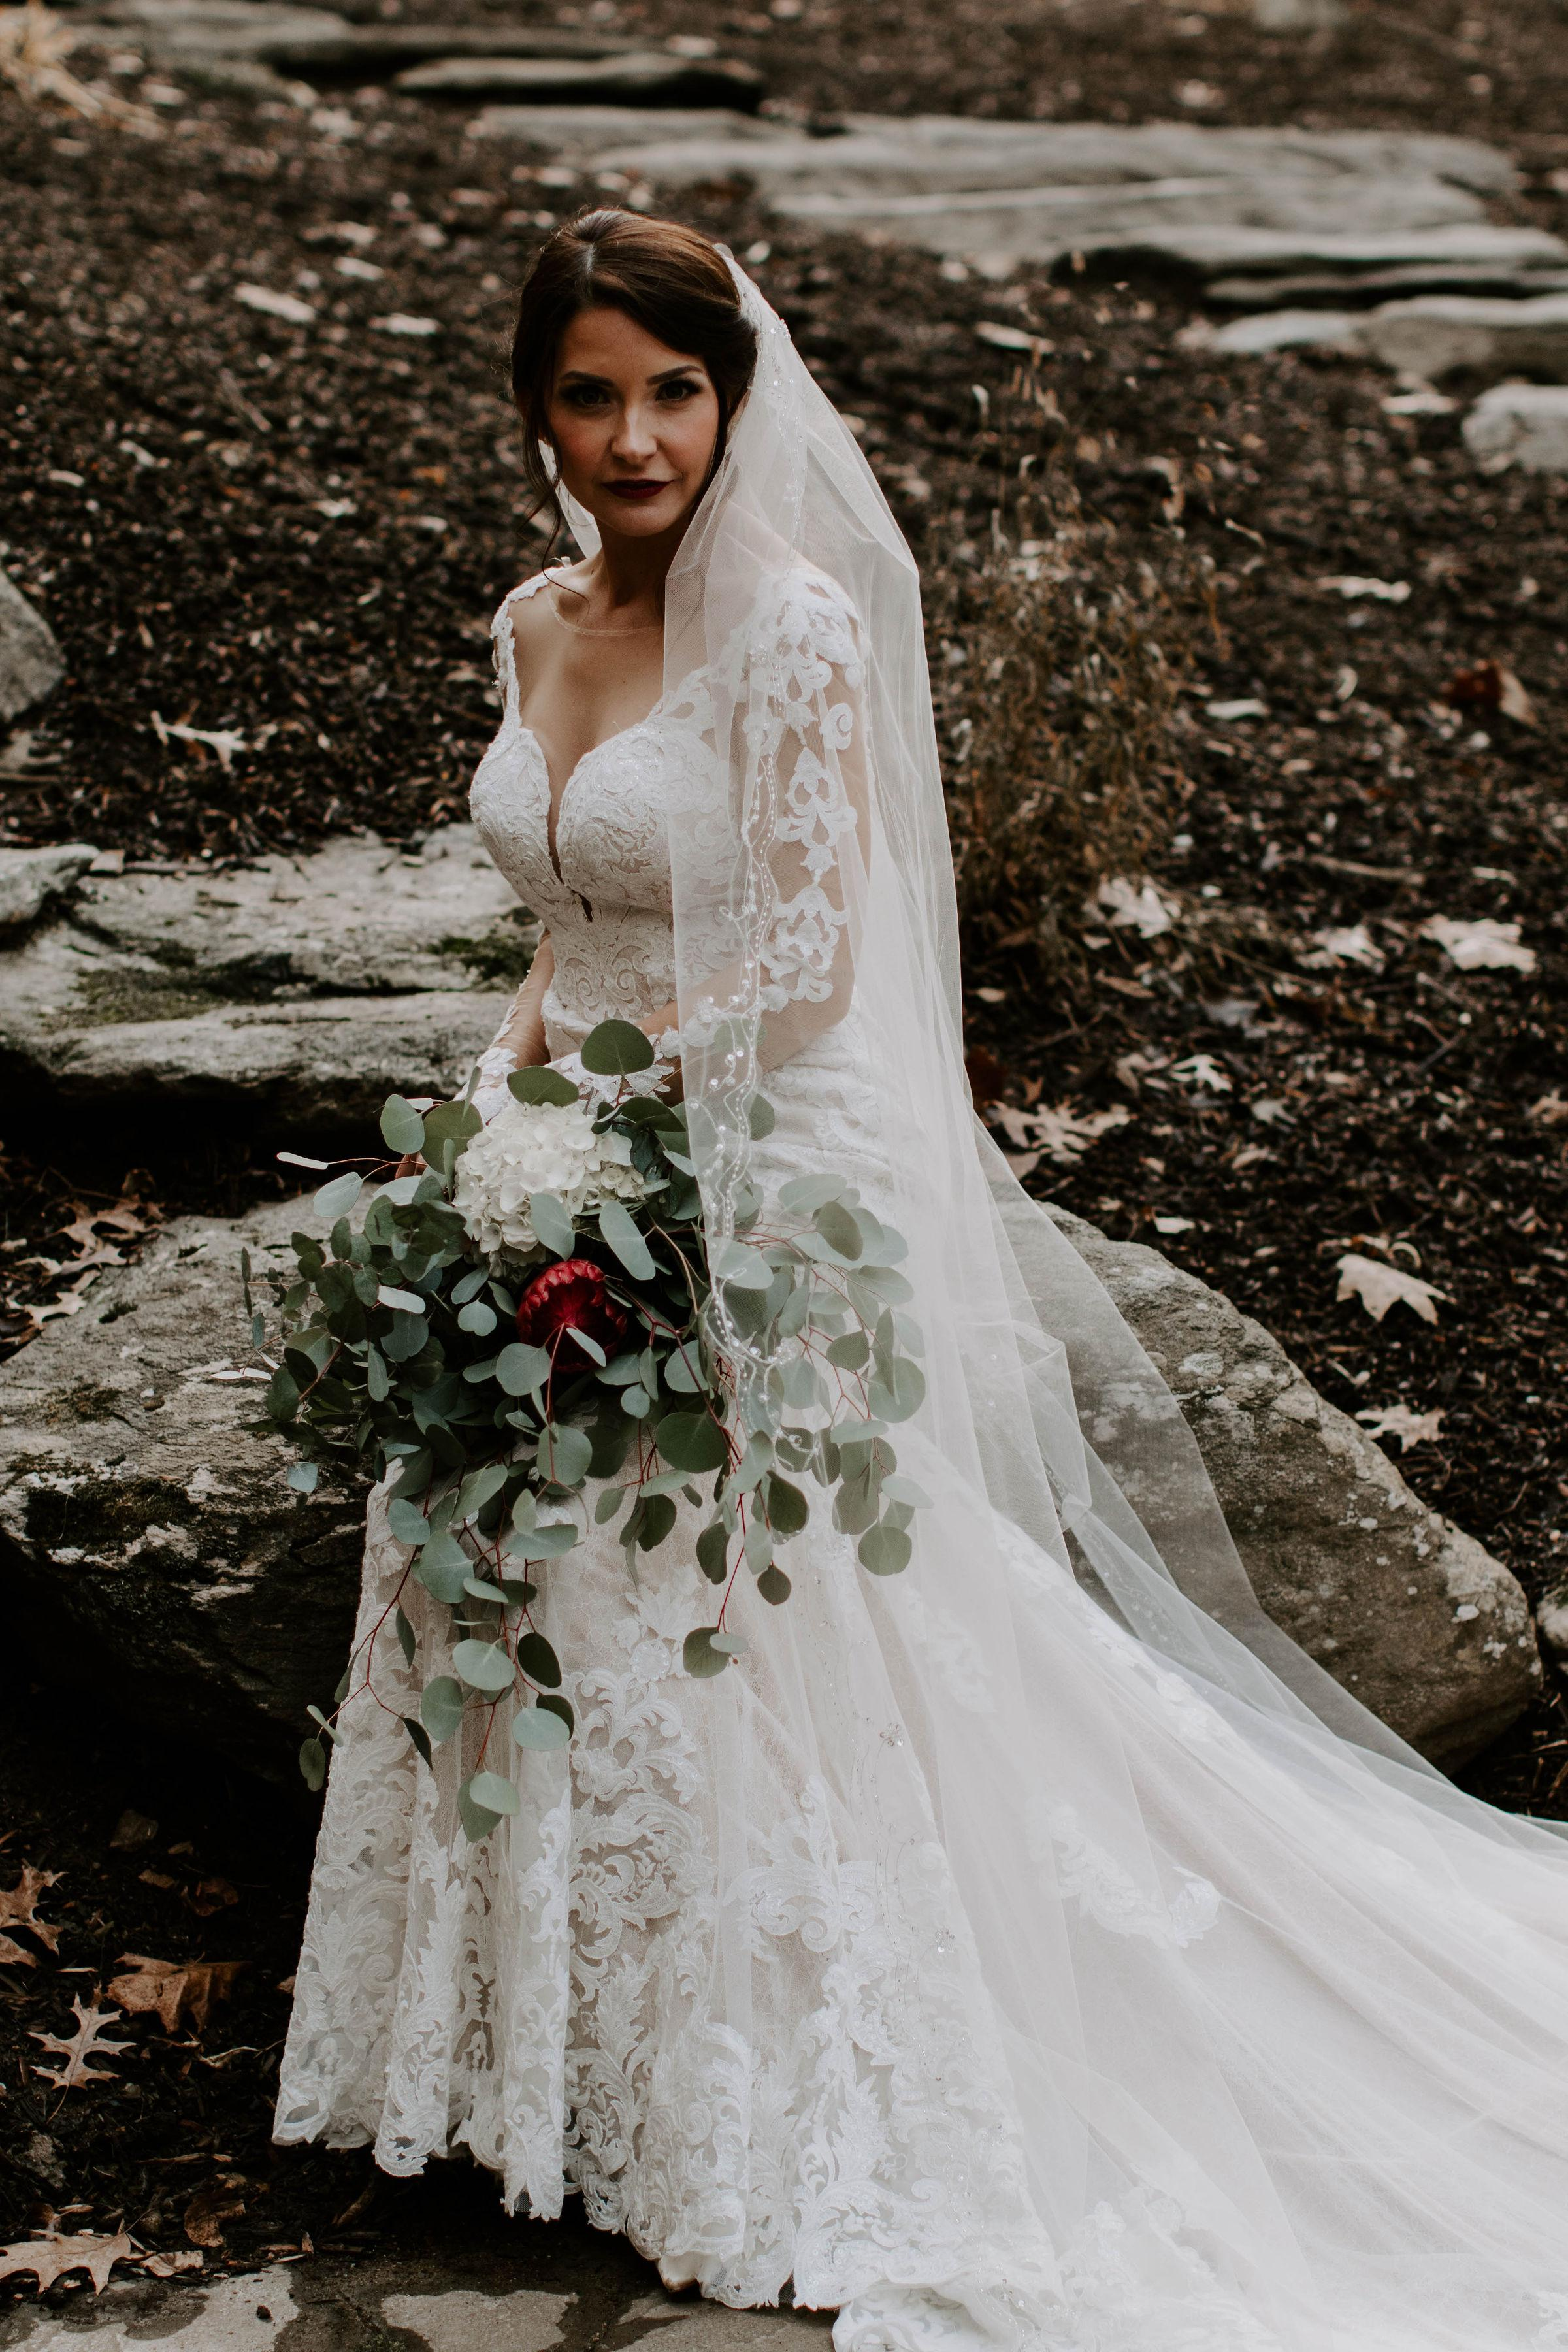 Florist: Monica's Floral Design (Image:{ }Lizz McConeghey)